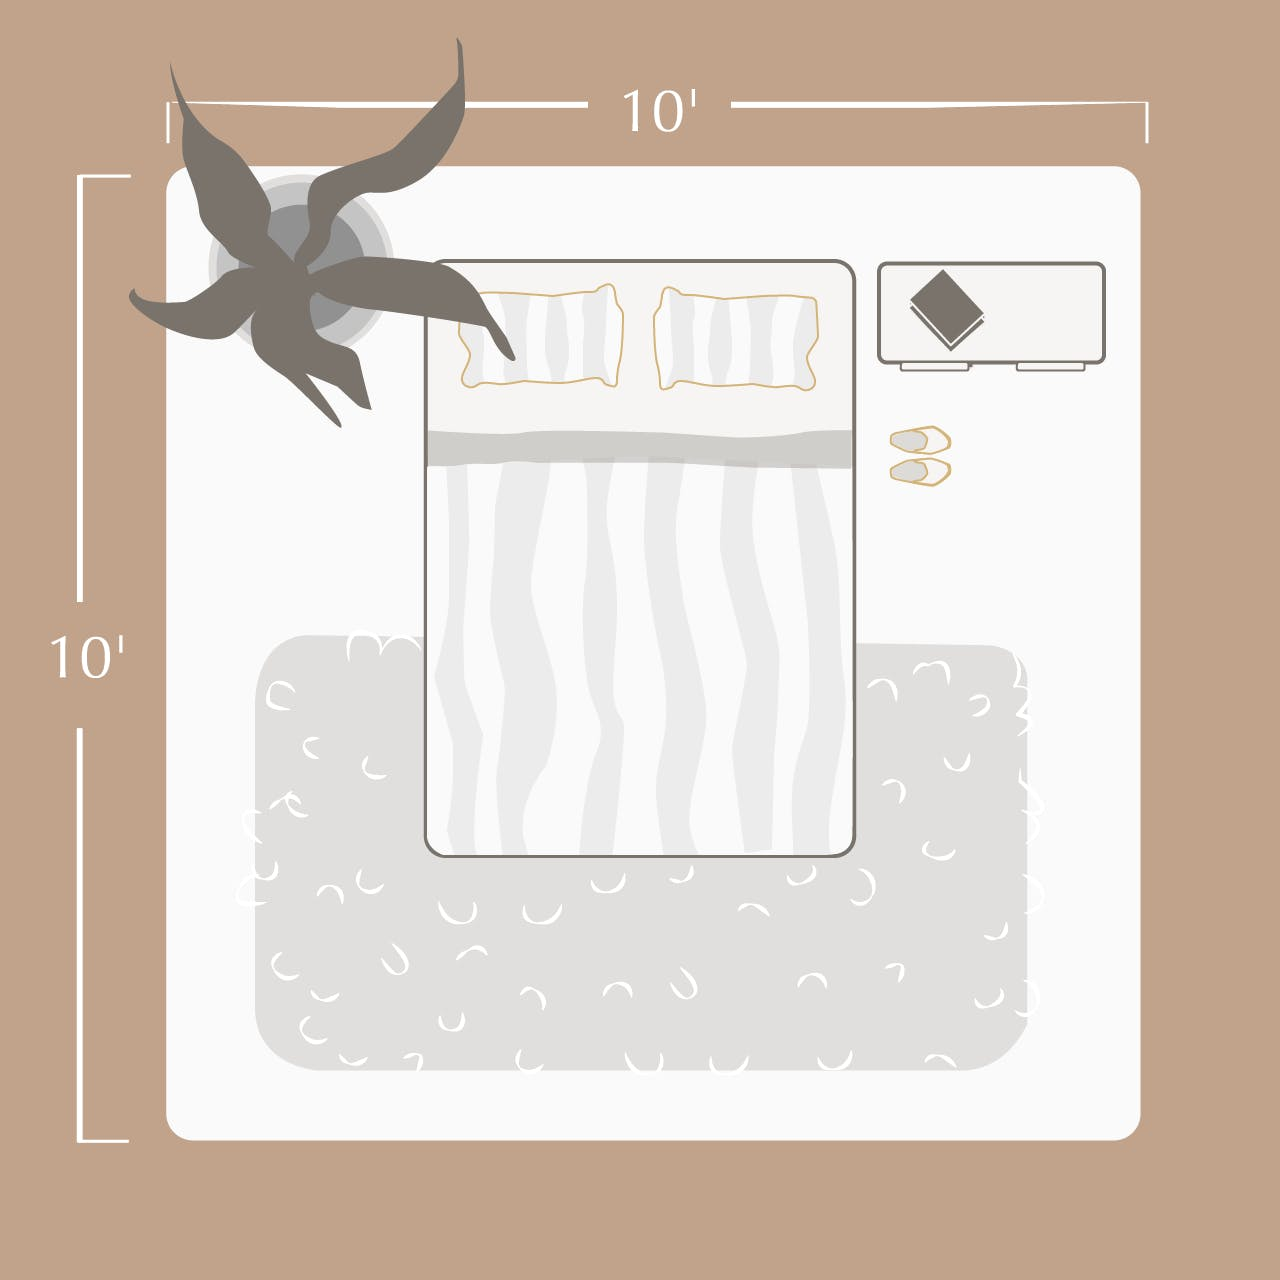 illustration with full size bed in it showing room dimensions of 10 feet by 10 feet